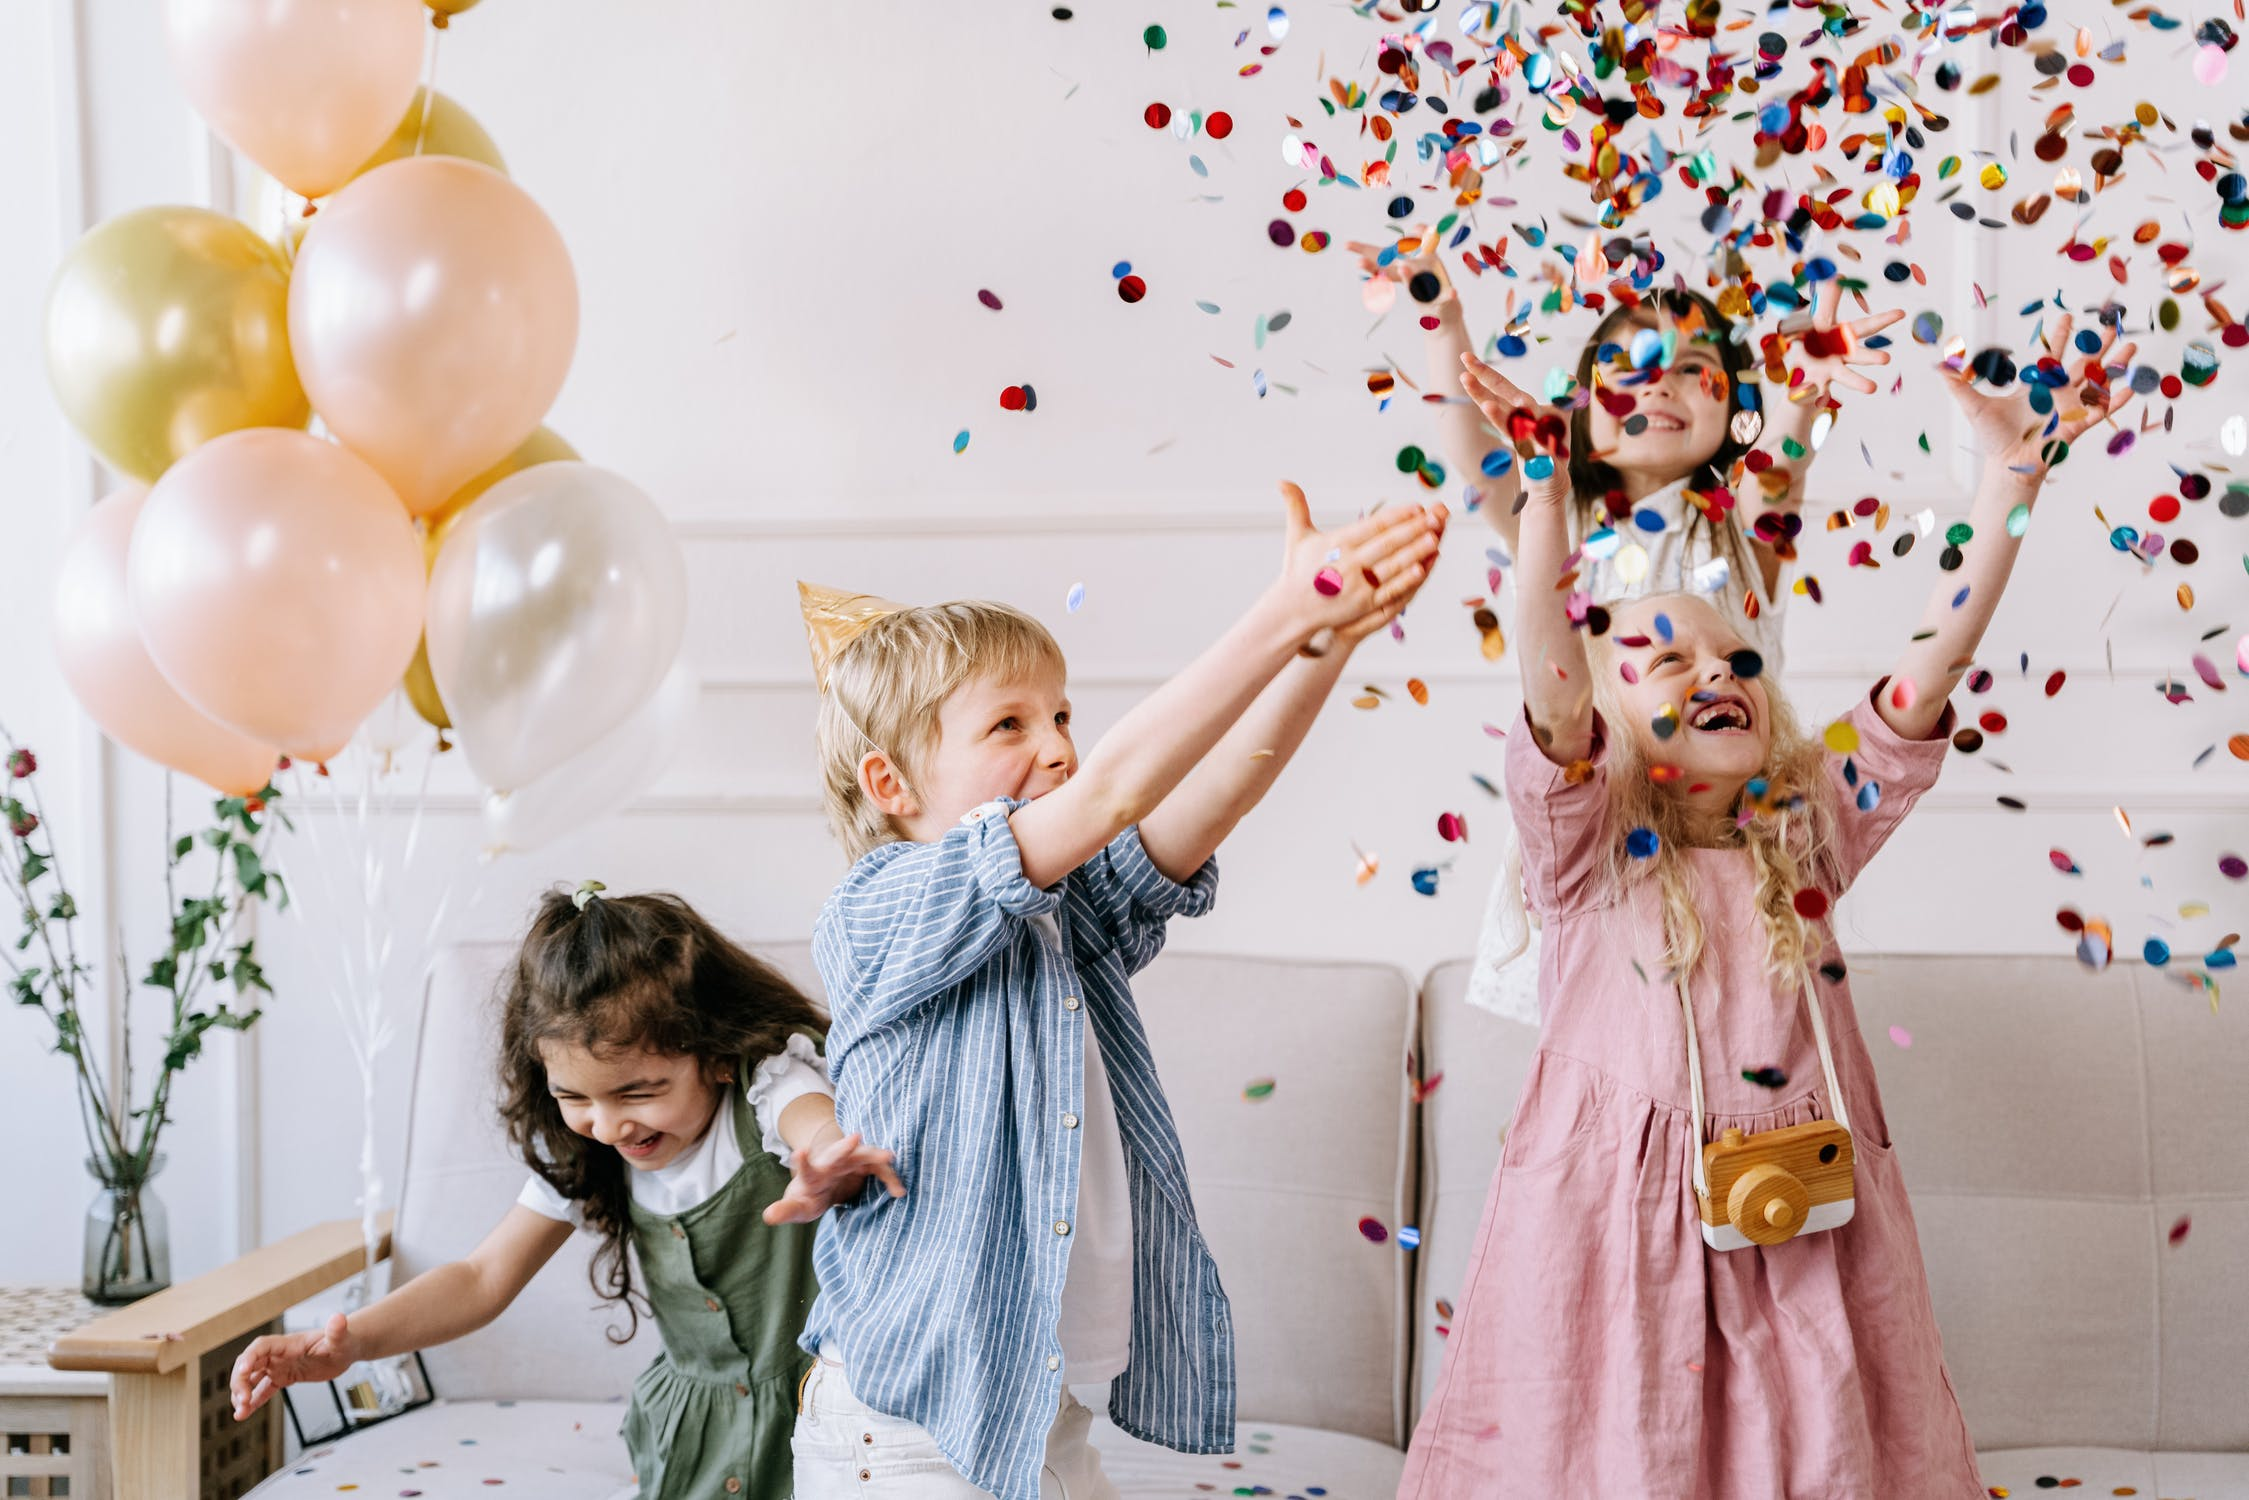 Children at a birthday party | Source: Pexels